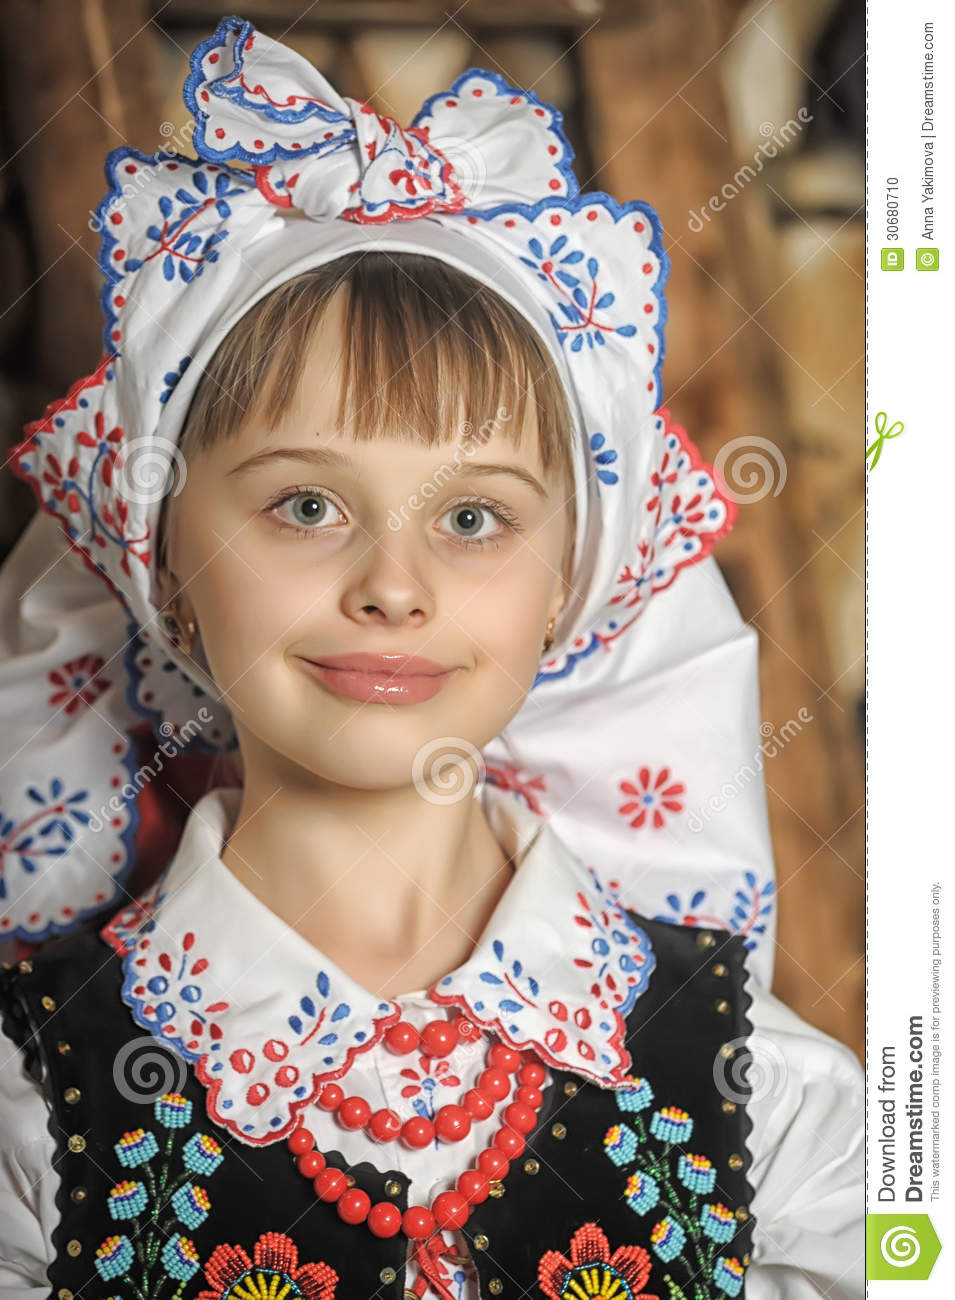 Apologise, but, polish teen girl models that can